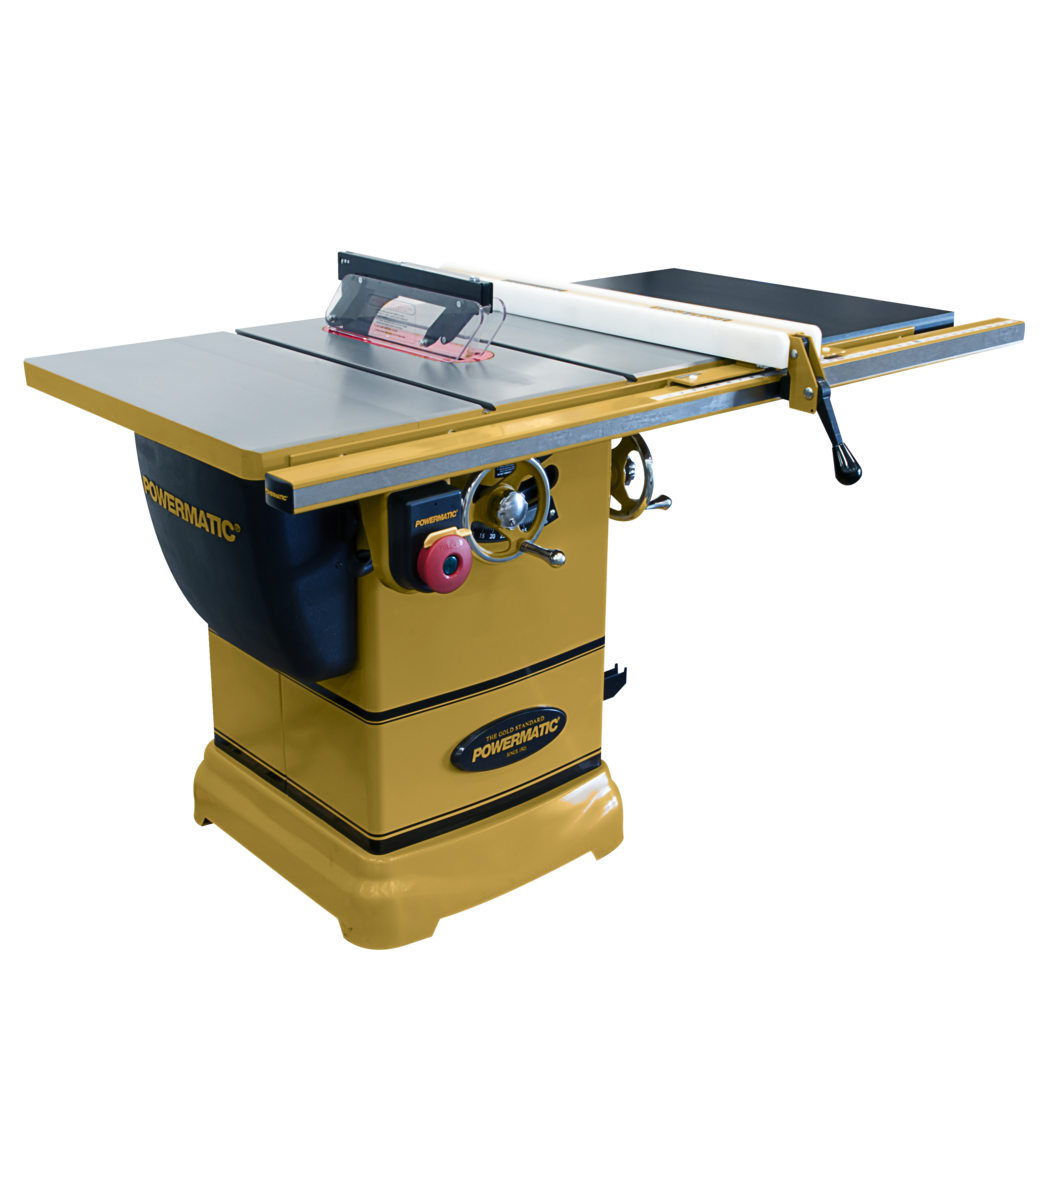 "PM1000, 1-3/4HP 1PH Table Saw, w/ 30"" Accu-Fence System"